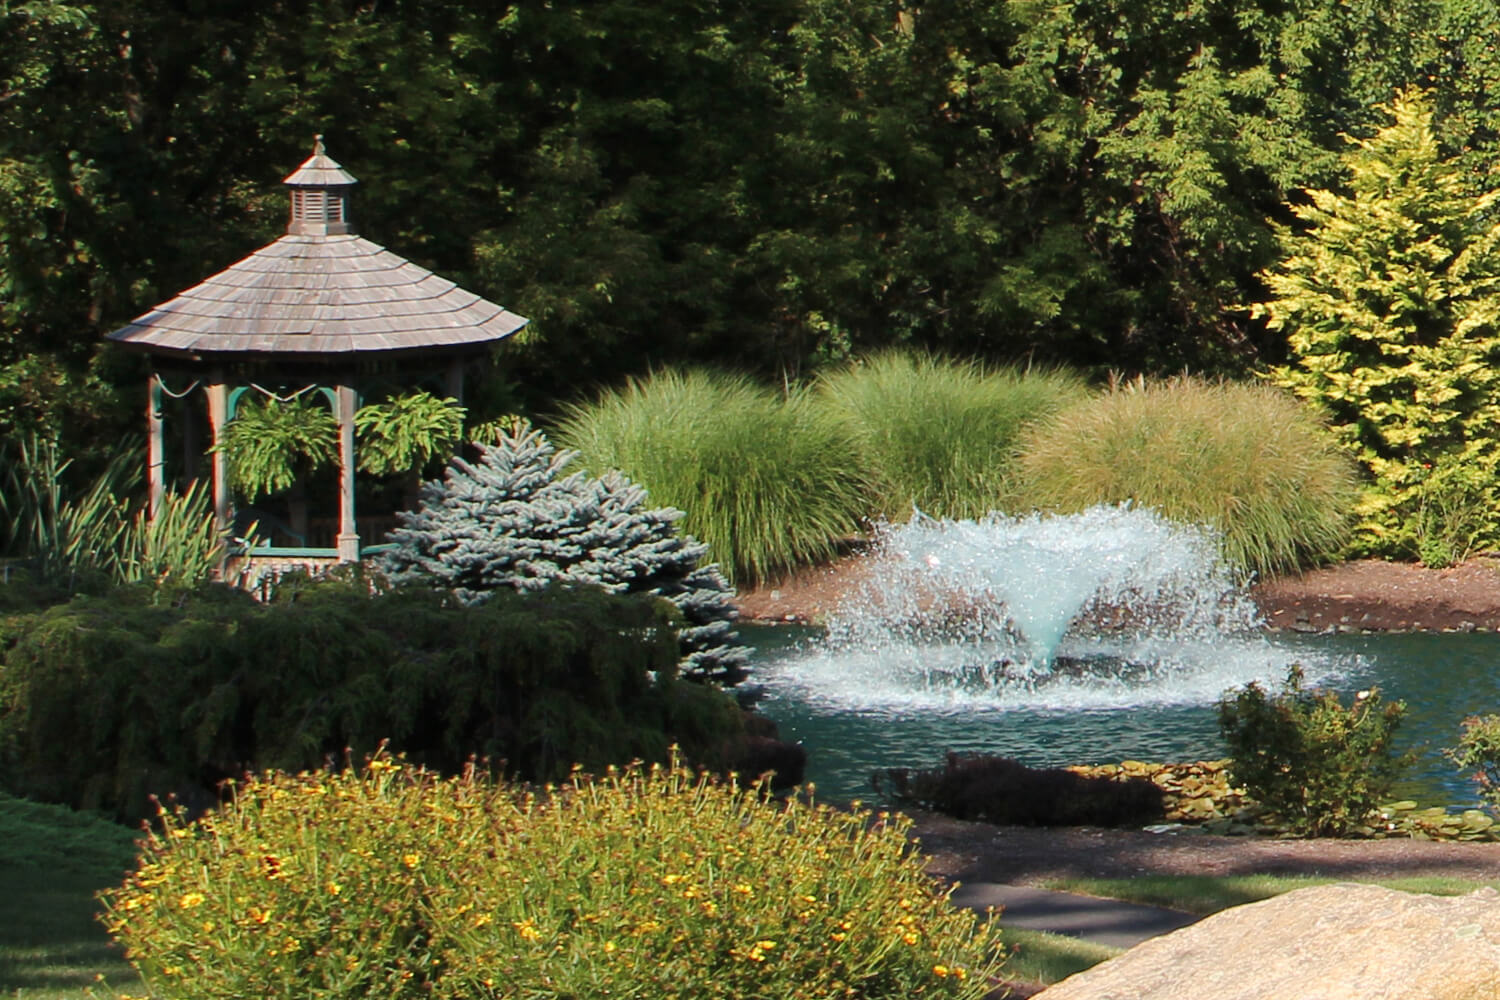 Otterbine's Saturn Aerating Fountain